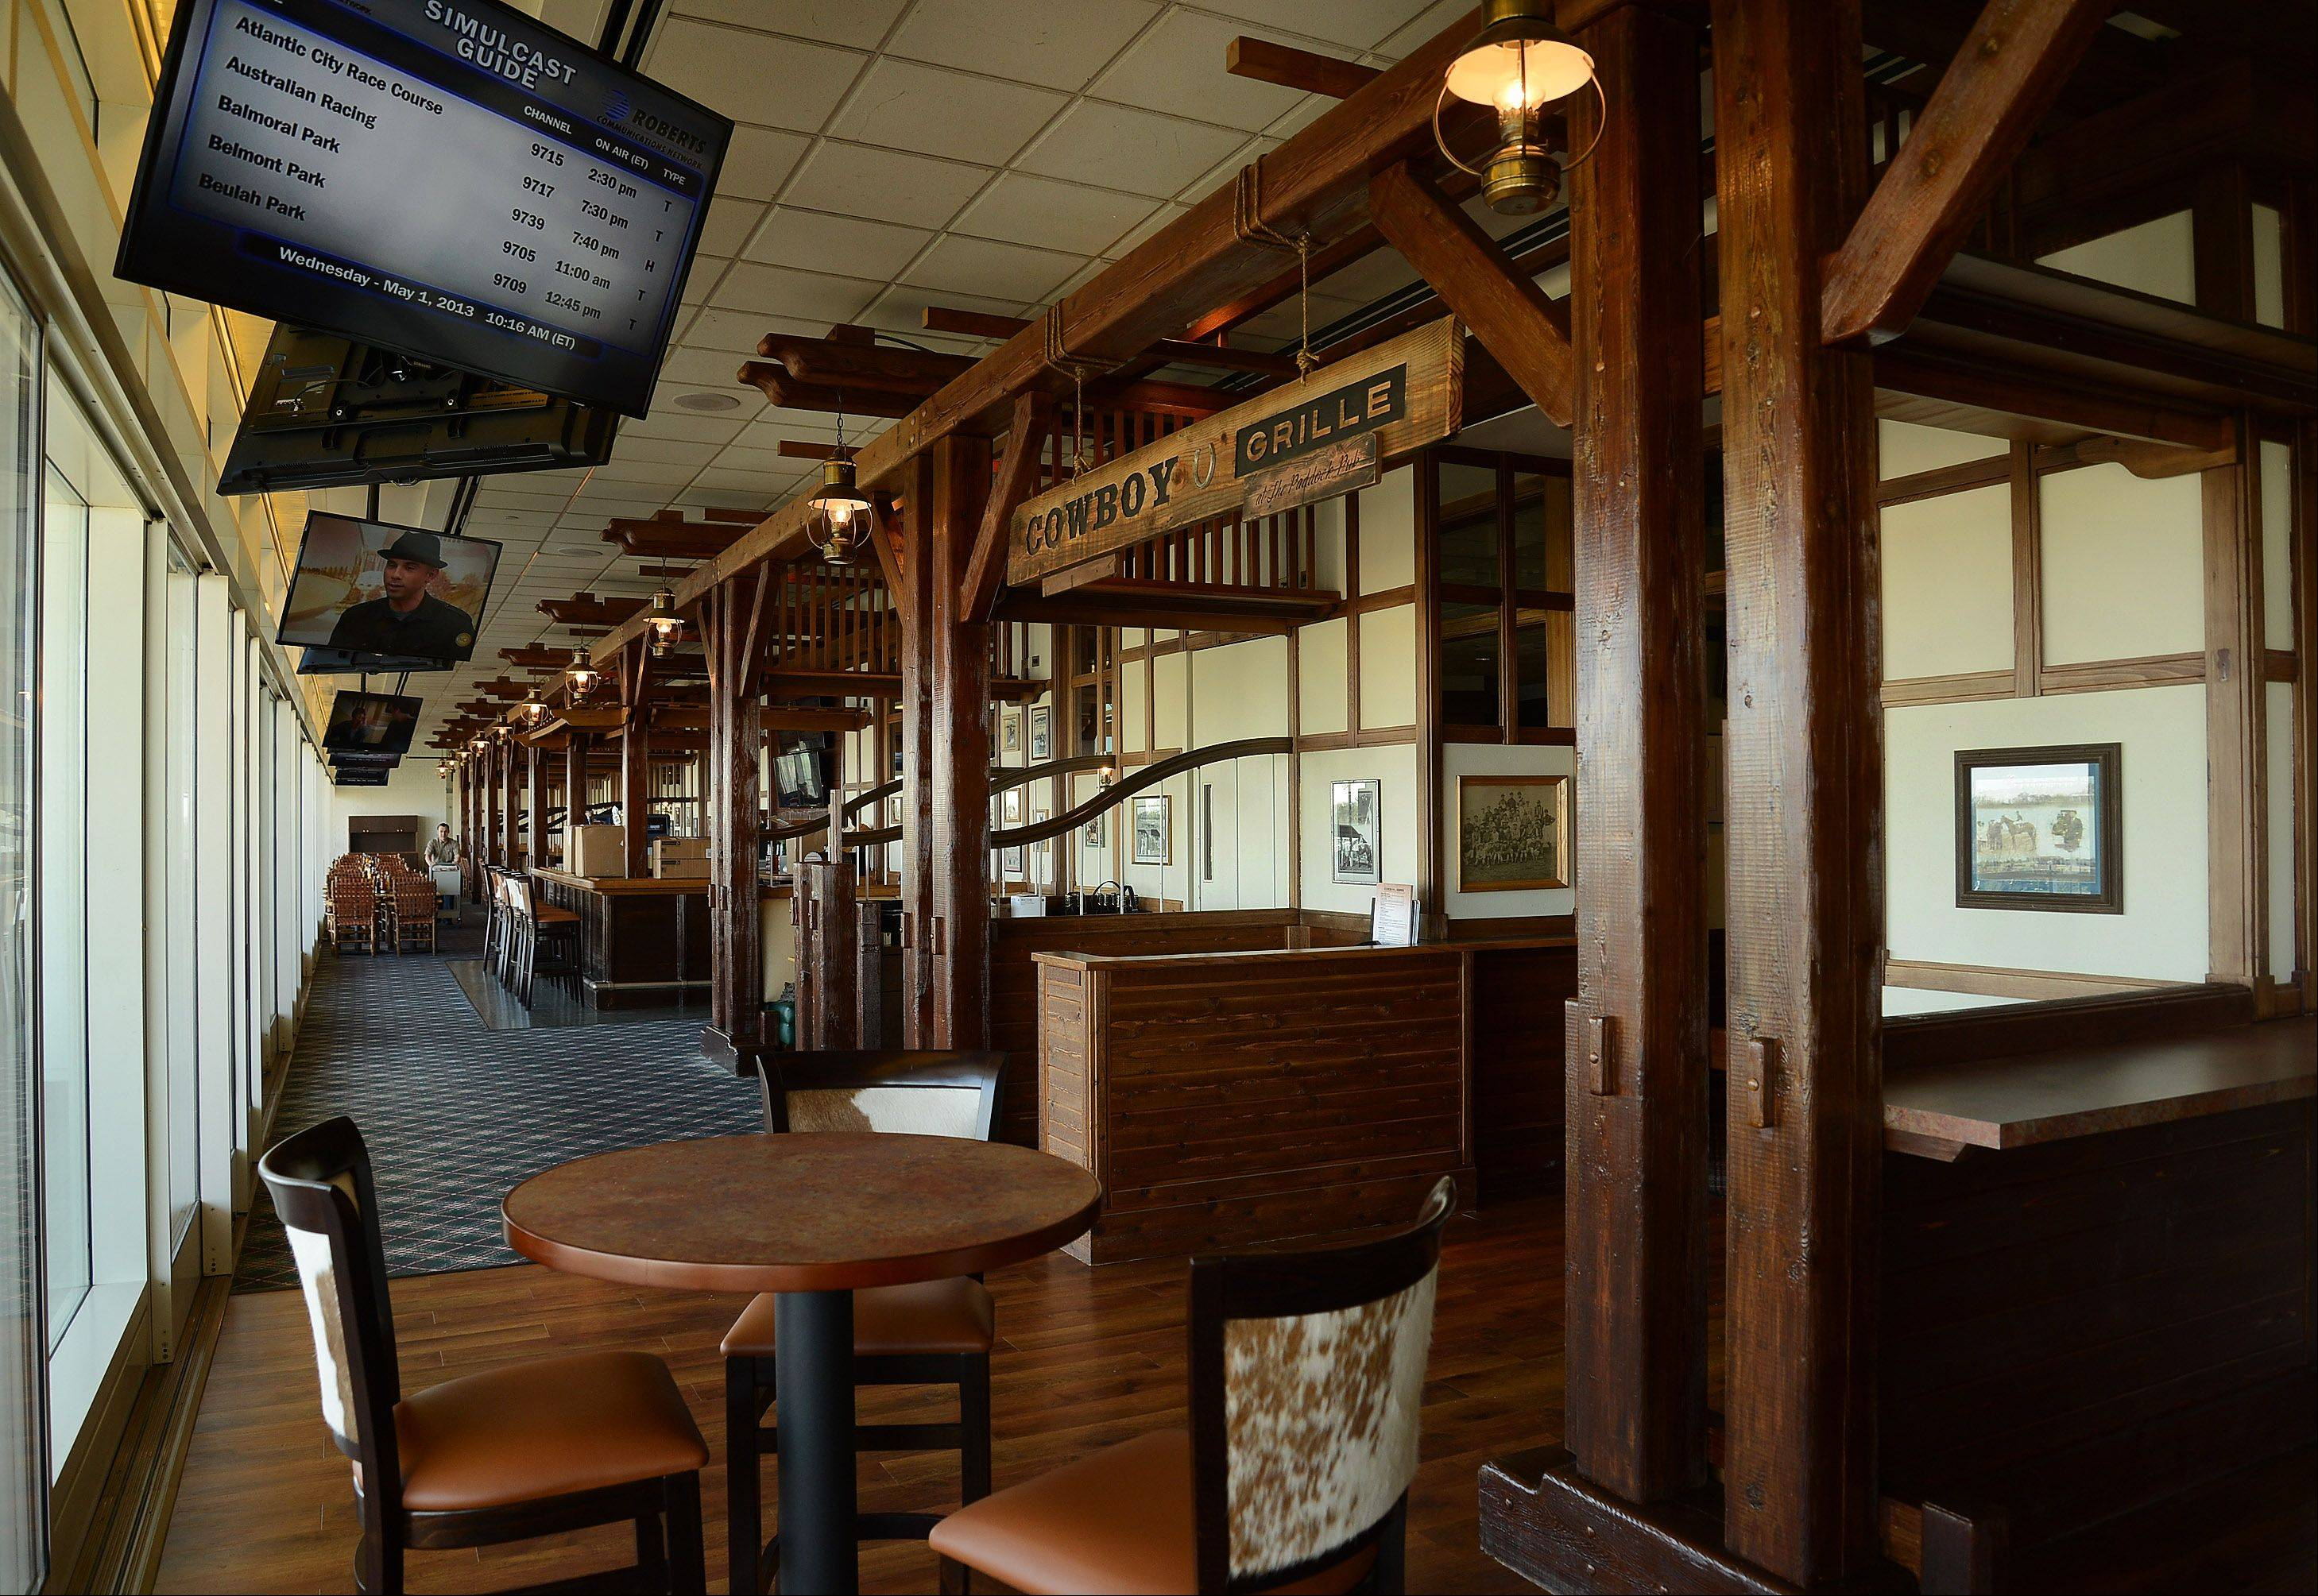 The new Cowboy Grille, which replaces the Paddock Pub this season is ready to open in preparation for opening day at Arlington International Racecourse.